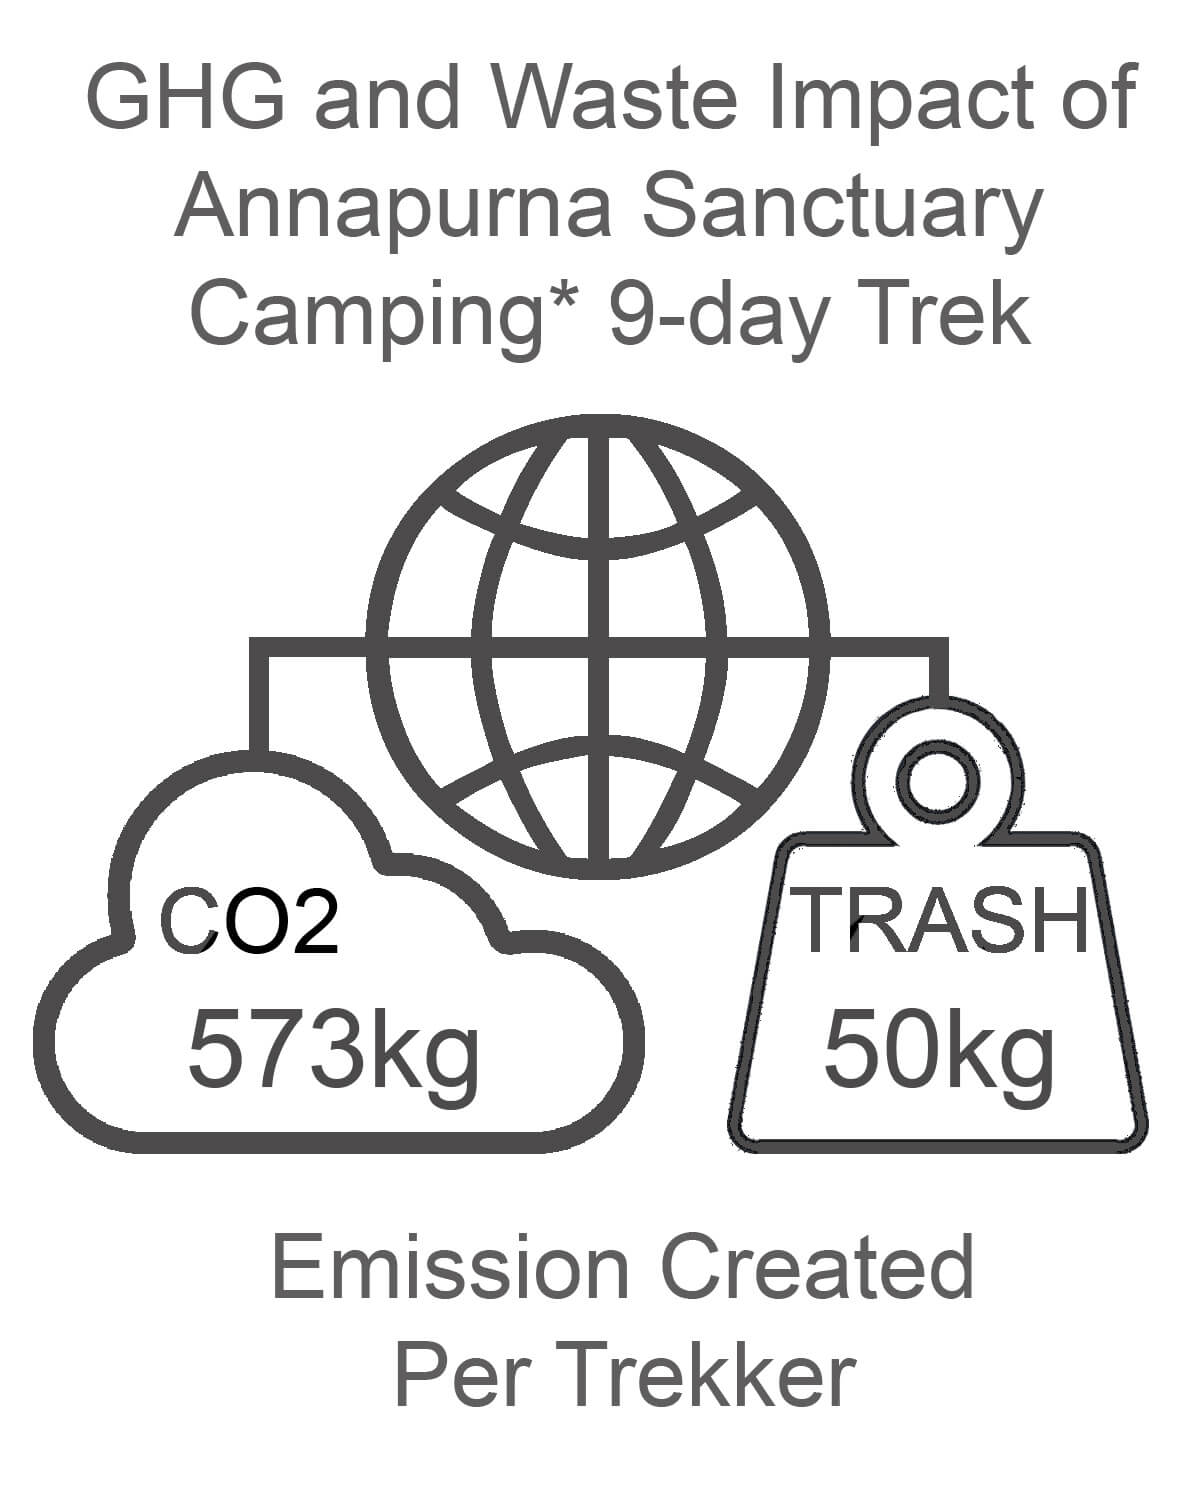 Annapurna Sanctuary GHG and Waste Impact CAMPING